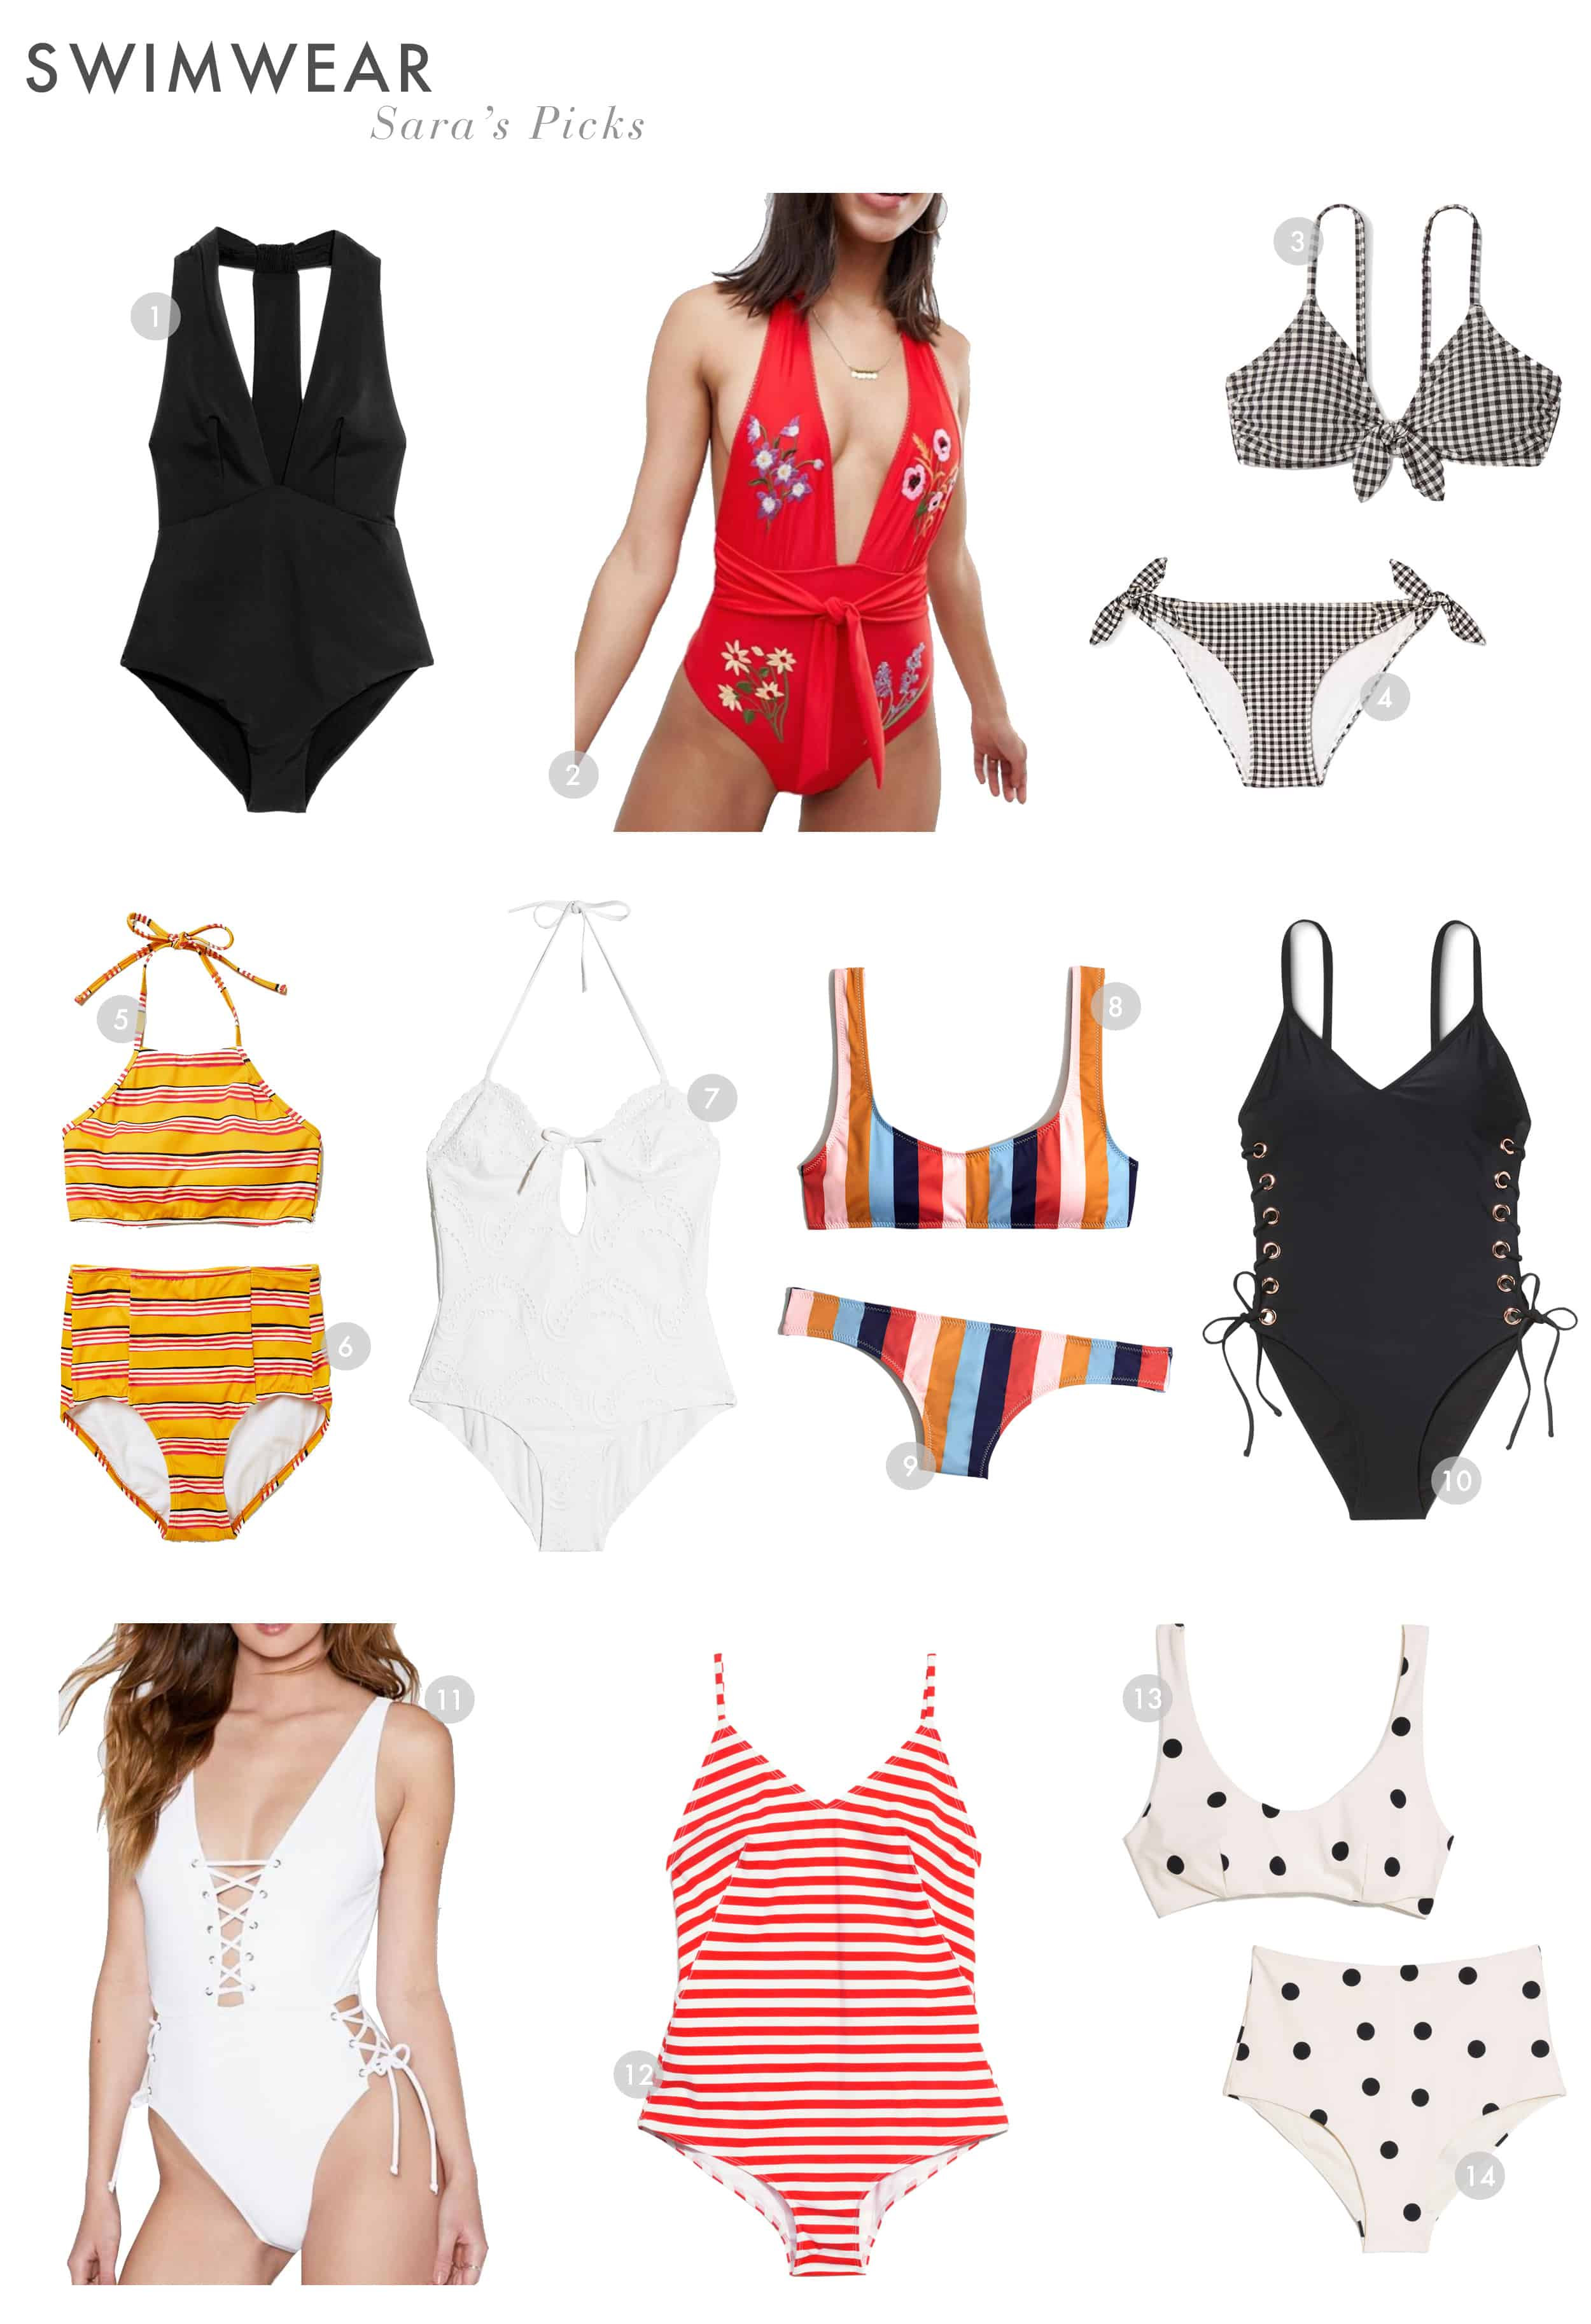 Emily Henderson Swimsuits Different Body Types Summmer Sara 1